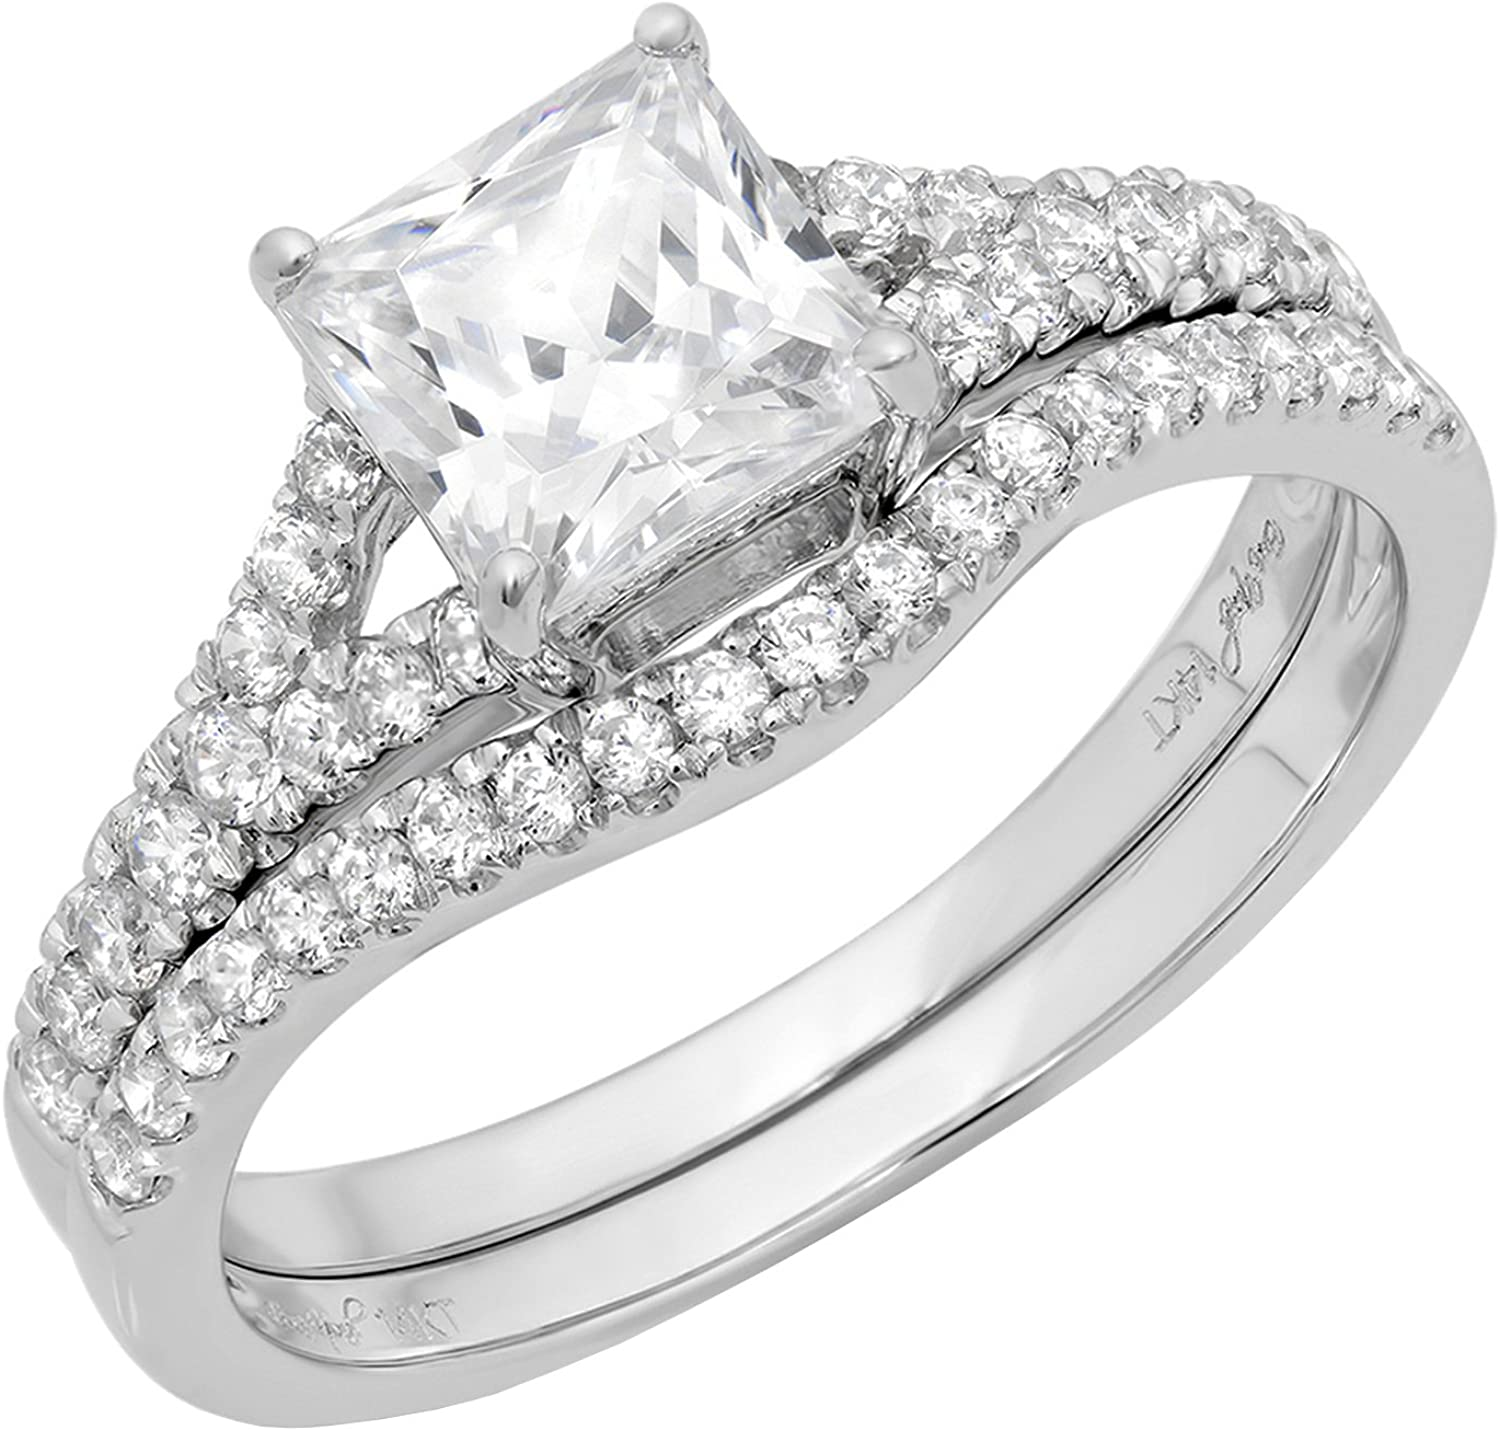 2.01ct Princess Cut Pave Solitaire Accent Lab Created White Sapphire & Simulated Diamond Engagement Promise Statement Anniversary Bridal Wedding Ring Band set Curved Real Solid 14k White Gold